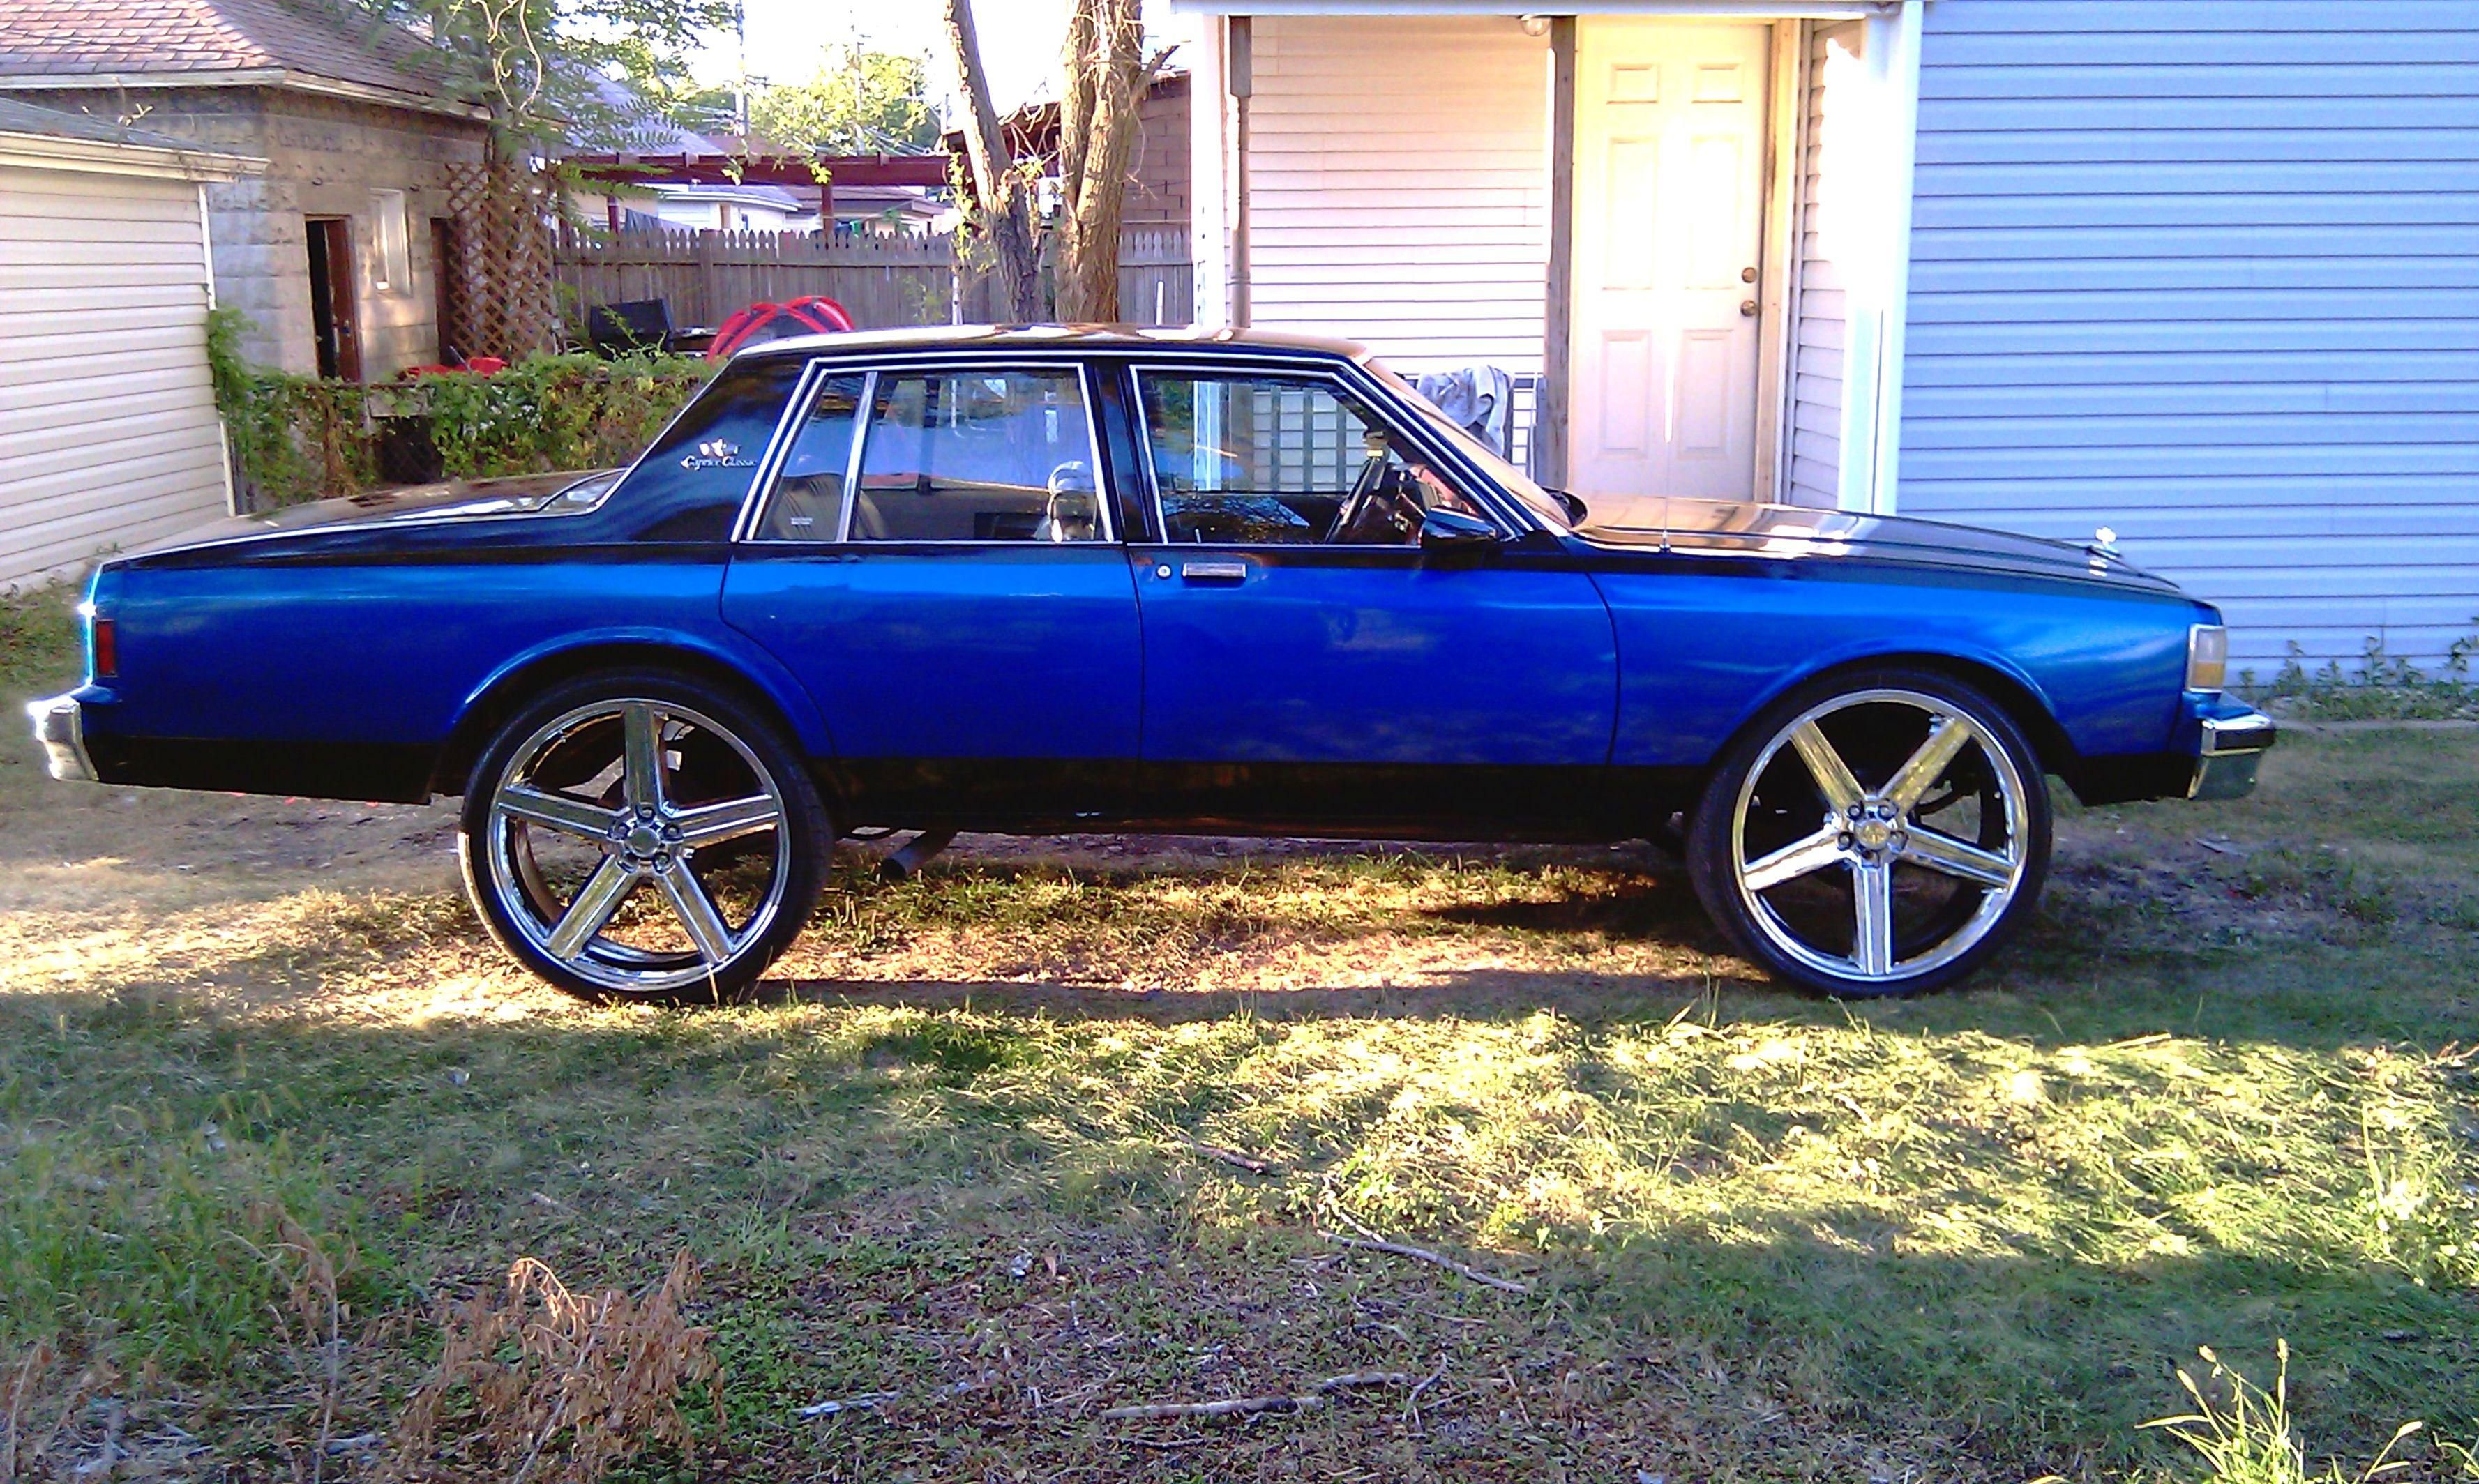 check out chinwoo 1990 chevrolet caprice classic in hazel crest il for ride specification modification caprice classic chevy caprice classic chevrolet caprice chinwoo 1990 chevrolet caprice classic